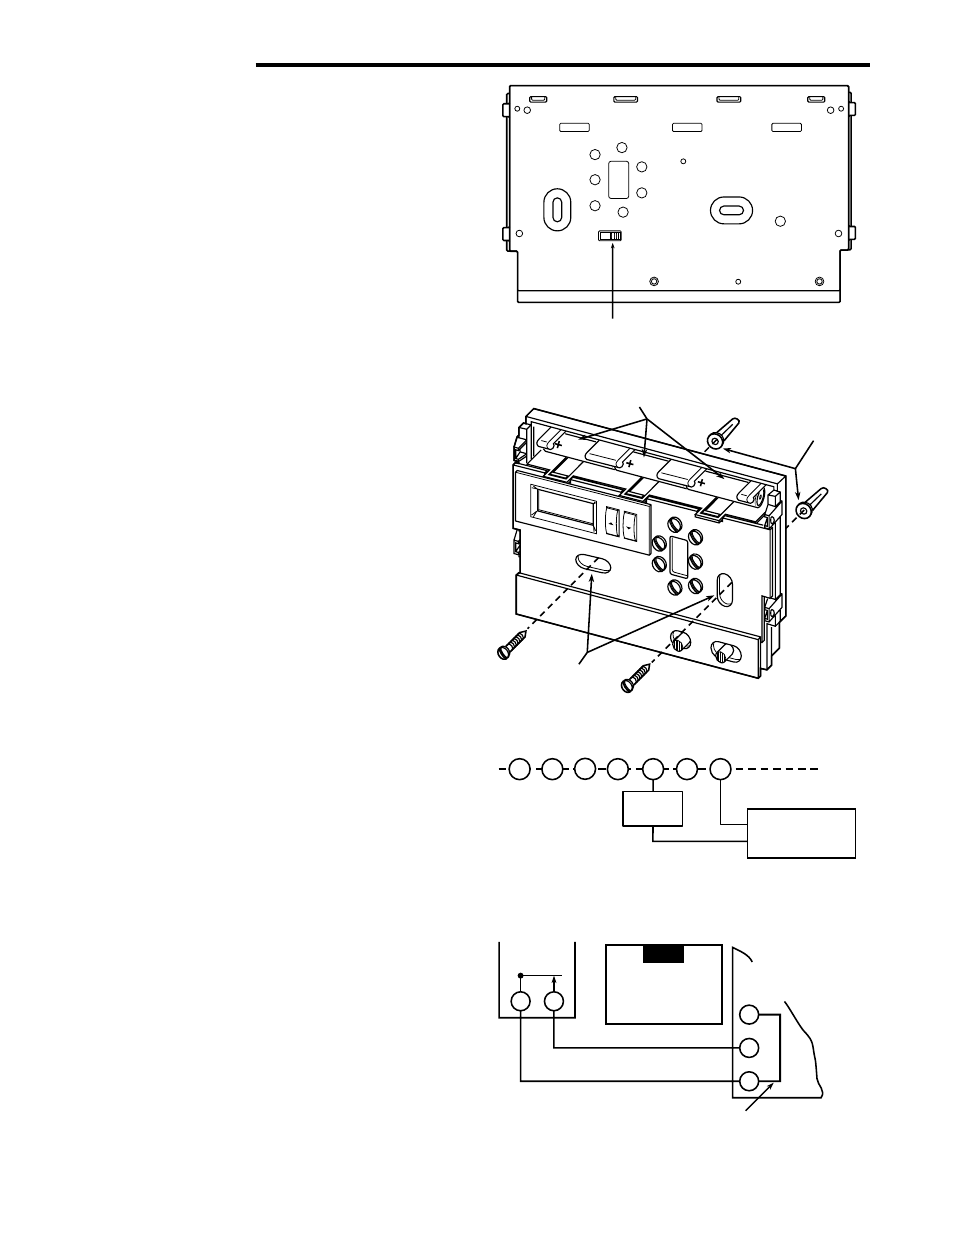 white rodgers zone valve wiring diagram white wiring diagrams